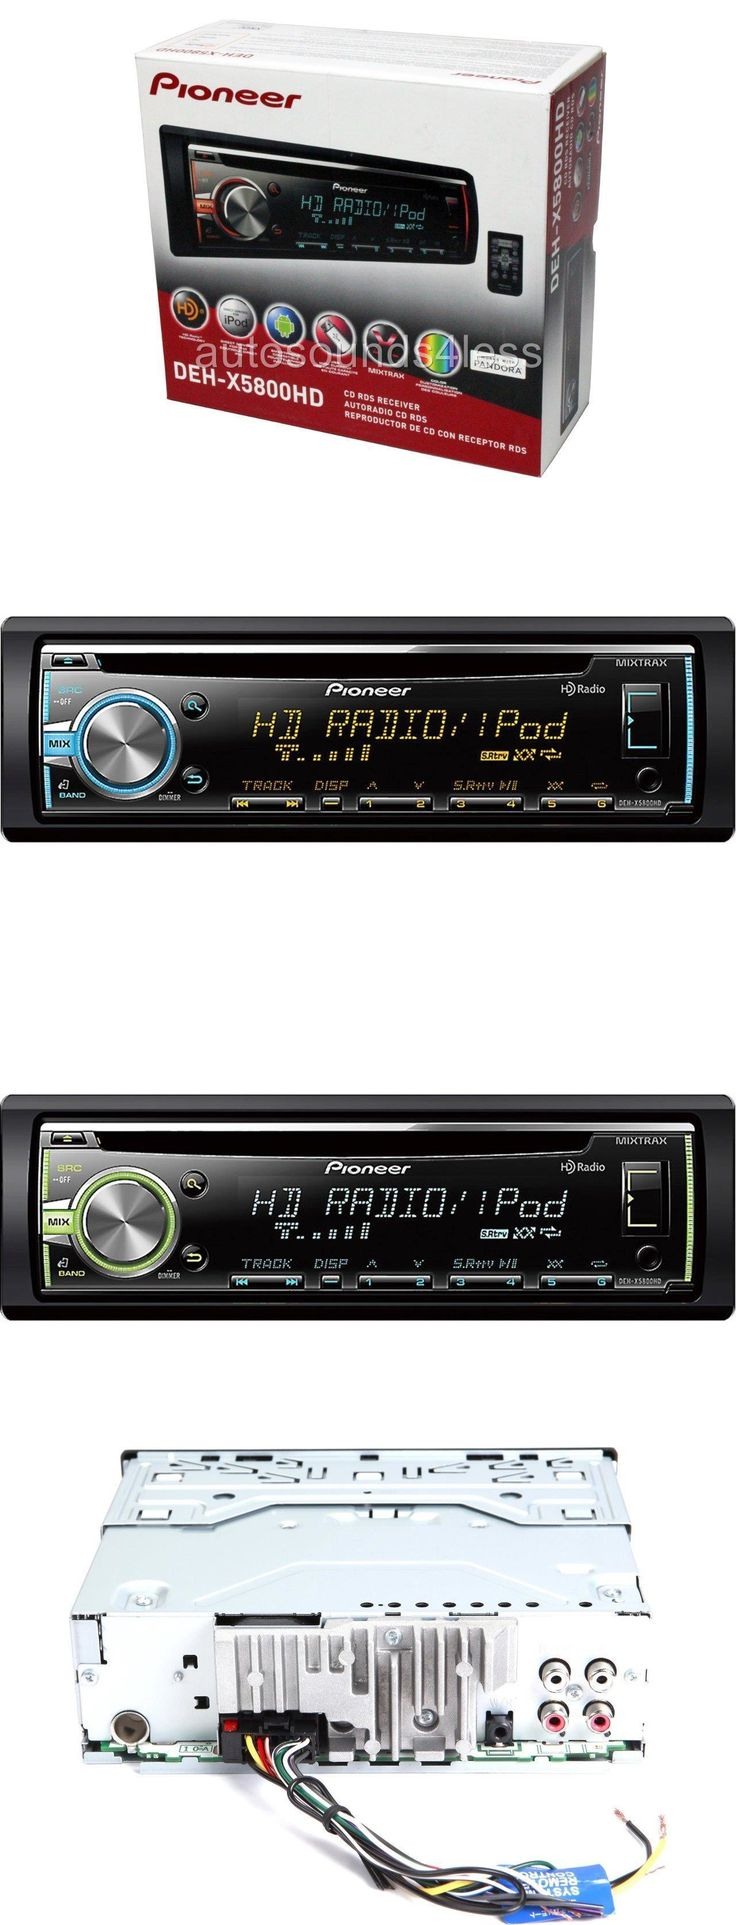 Car Audio In-Dash Units: Pioneer Deh-X5800hd Cd Mp3 Wma Player Hd Radio Pandora Support Front Usb Aux -> BUY IT NOW ONLY: $89 on eBay!